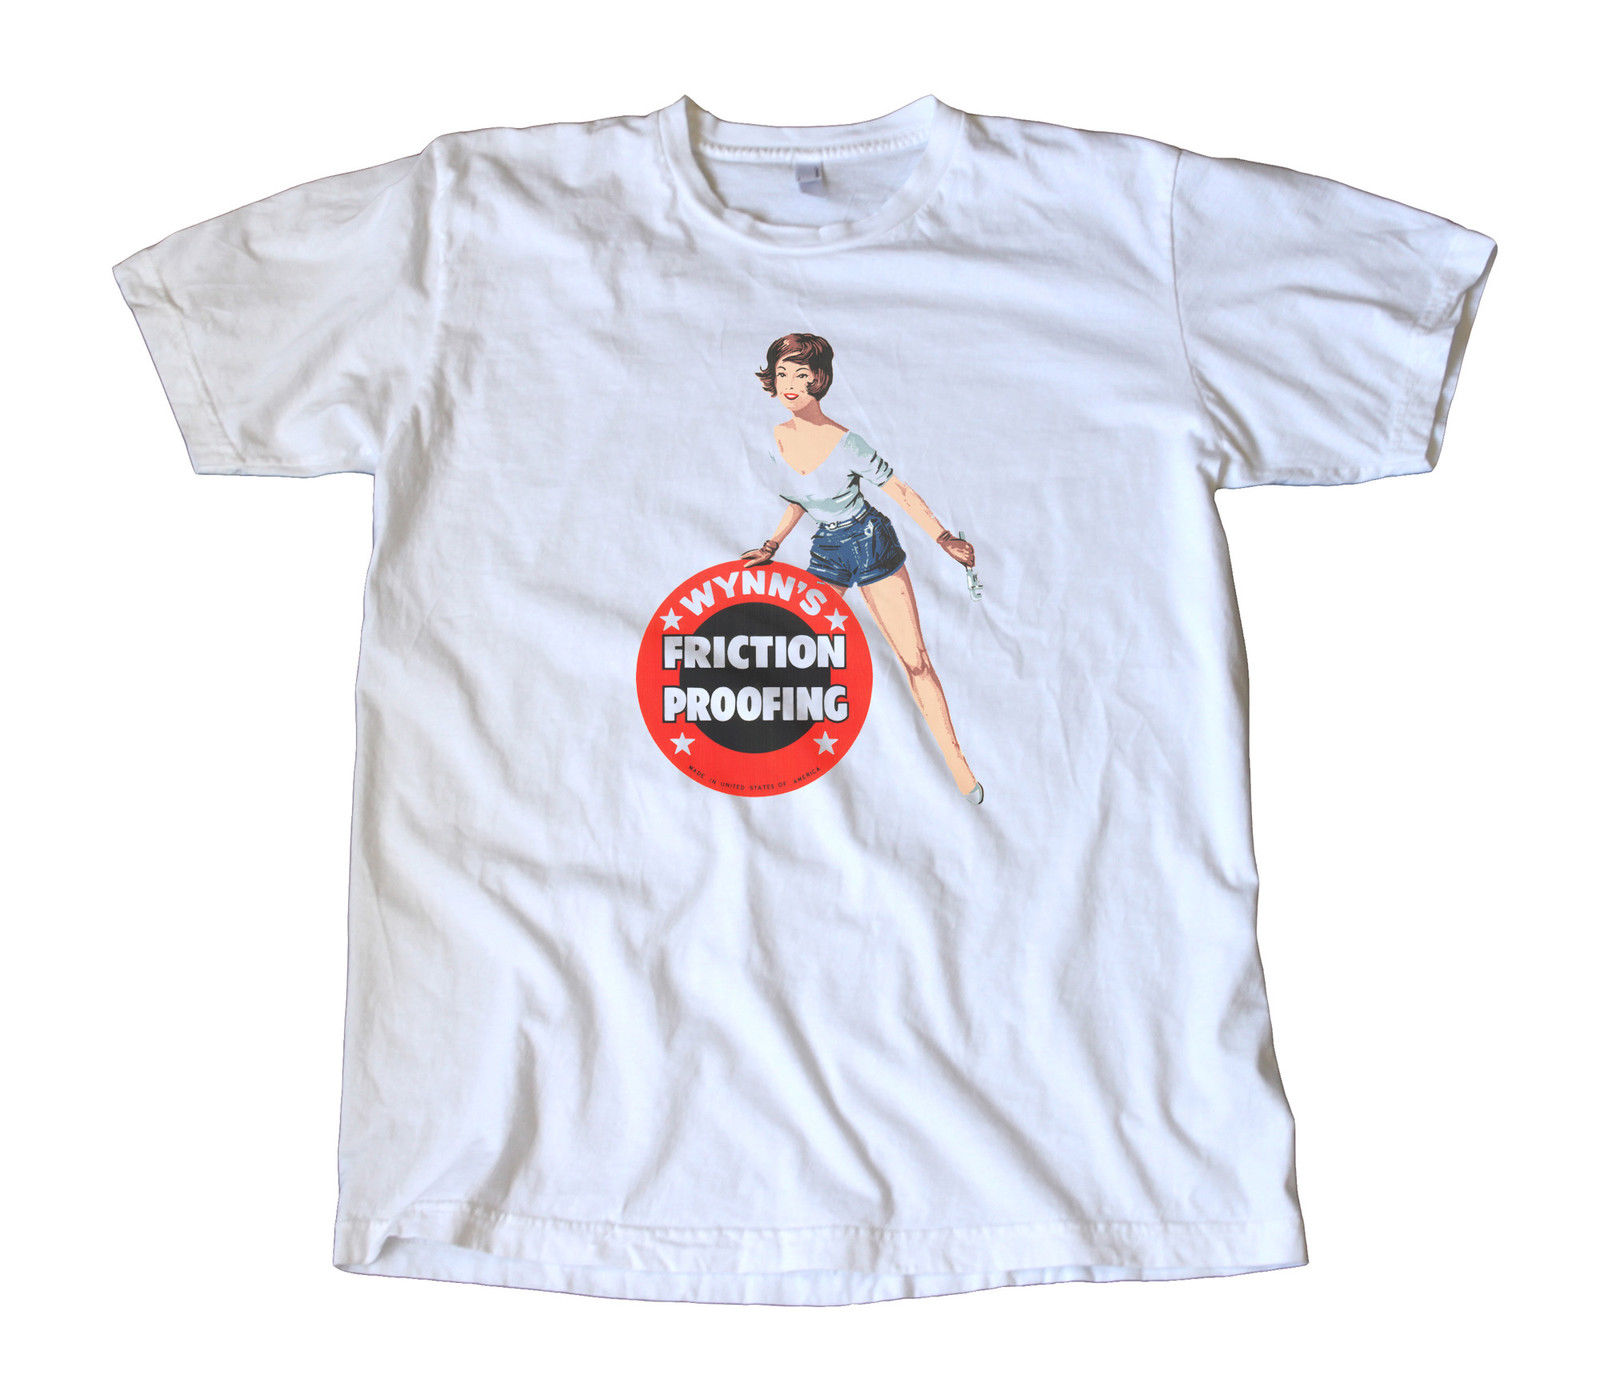 Vintage Wynns Friction Proofing Decal T-Shirt - Pin Up, Shop Girl, Hot Rod